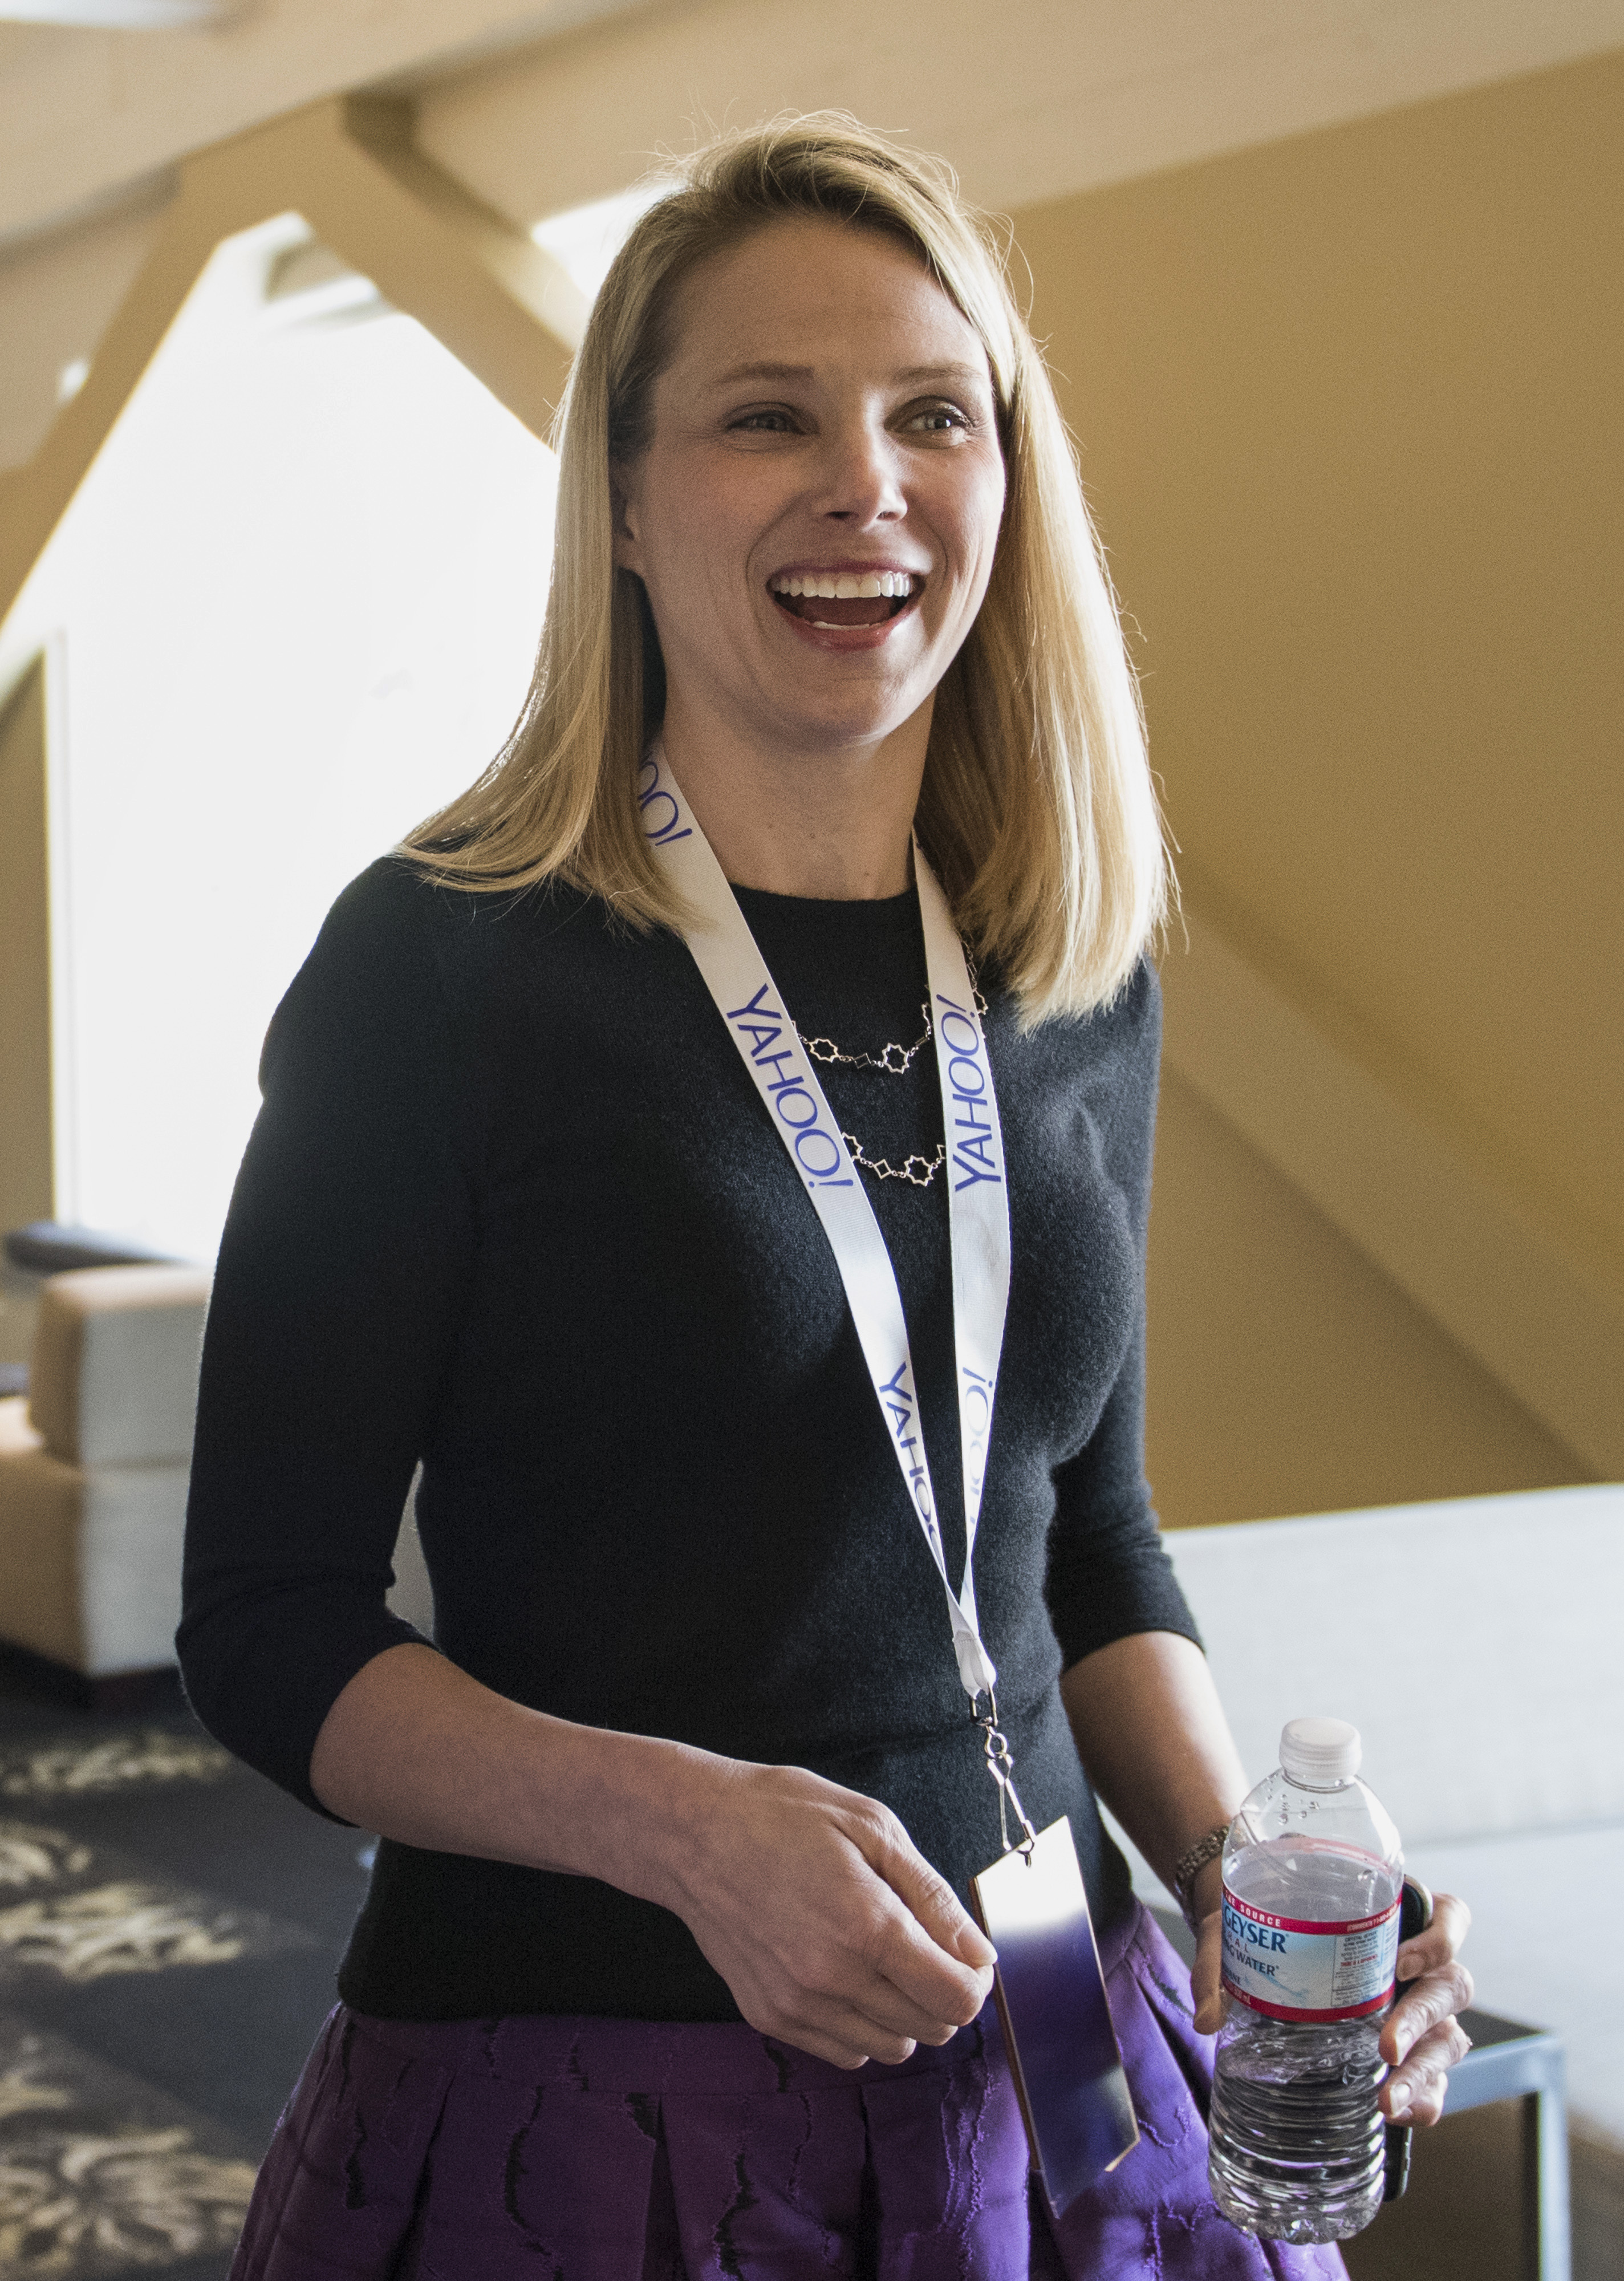 Marissa Mayer at the Yahoo! Inc. Mobile Developer Conference in San Francisco on Feb. 19, 2015.